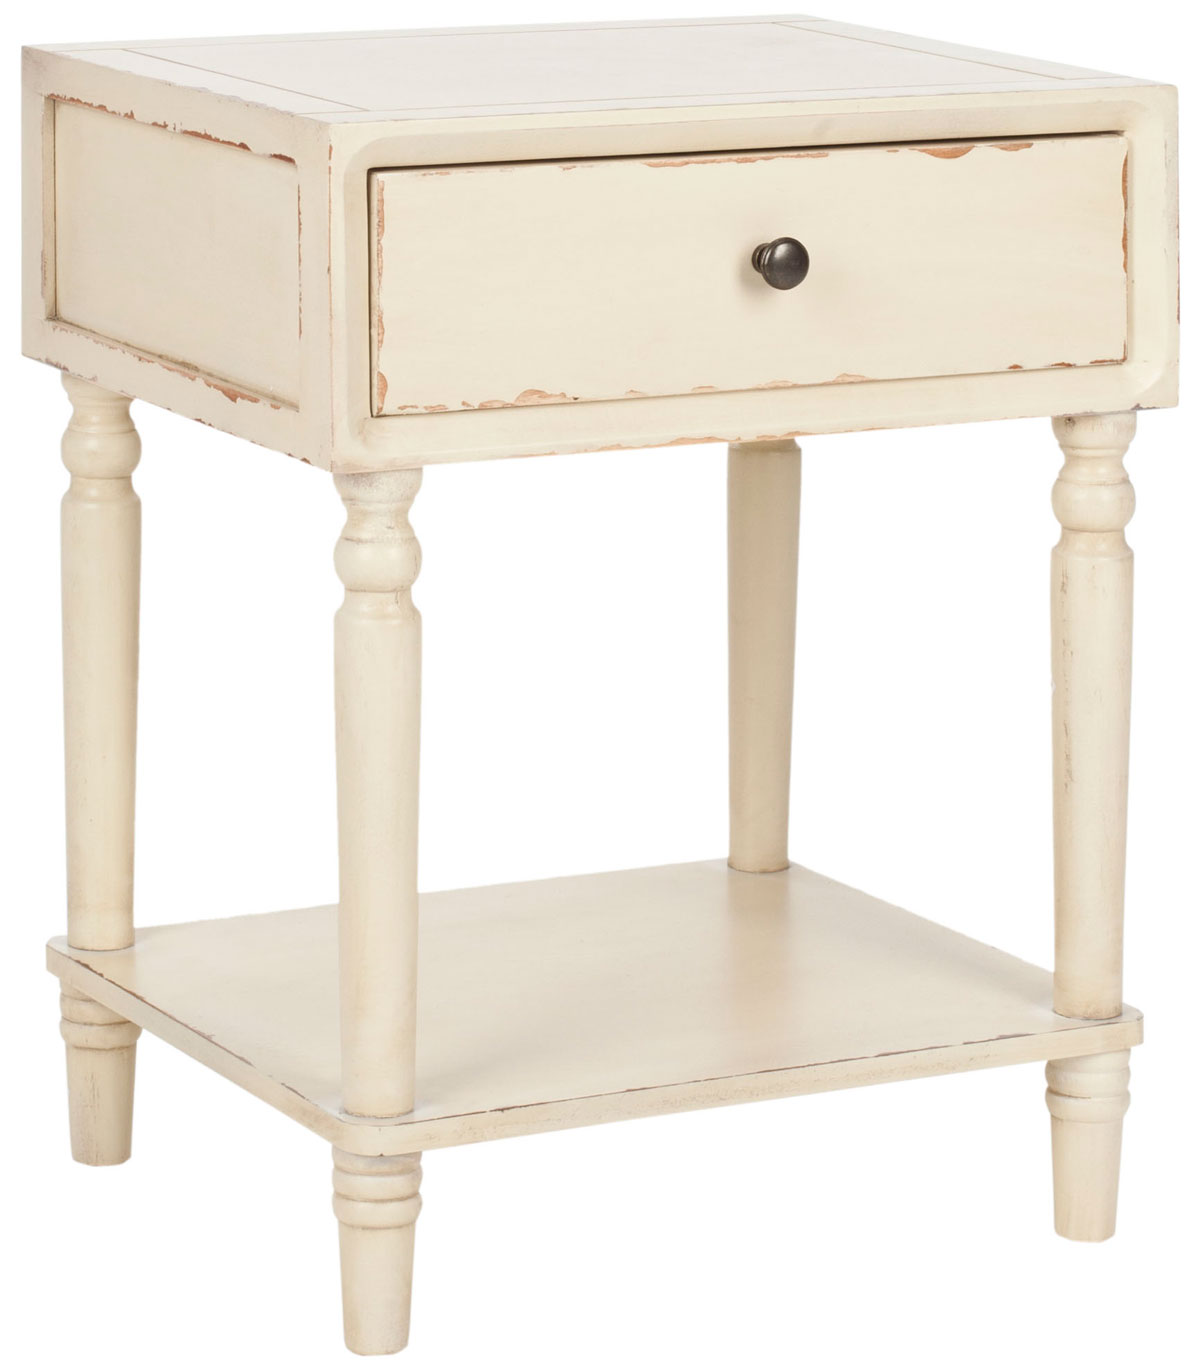 accent tables furniture safavieh side navy blue table siobhan with storage drawer design rattan chair tiny coffee narrow white bedside cabinets inexpensive kitchen small space